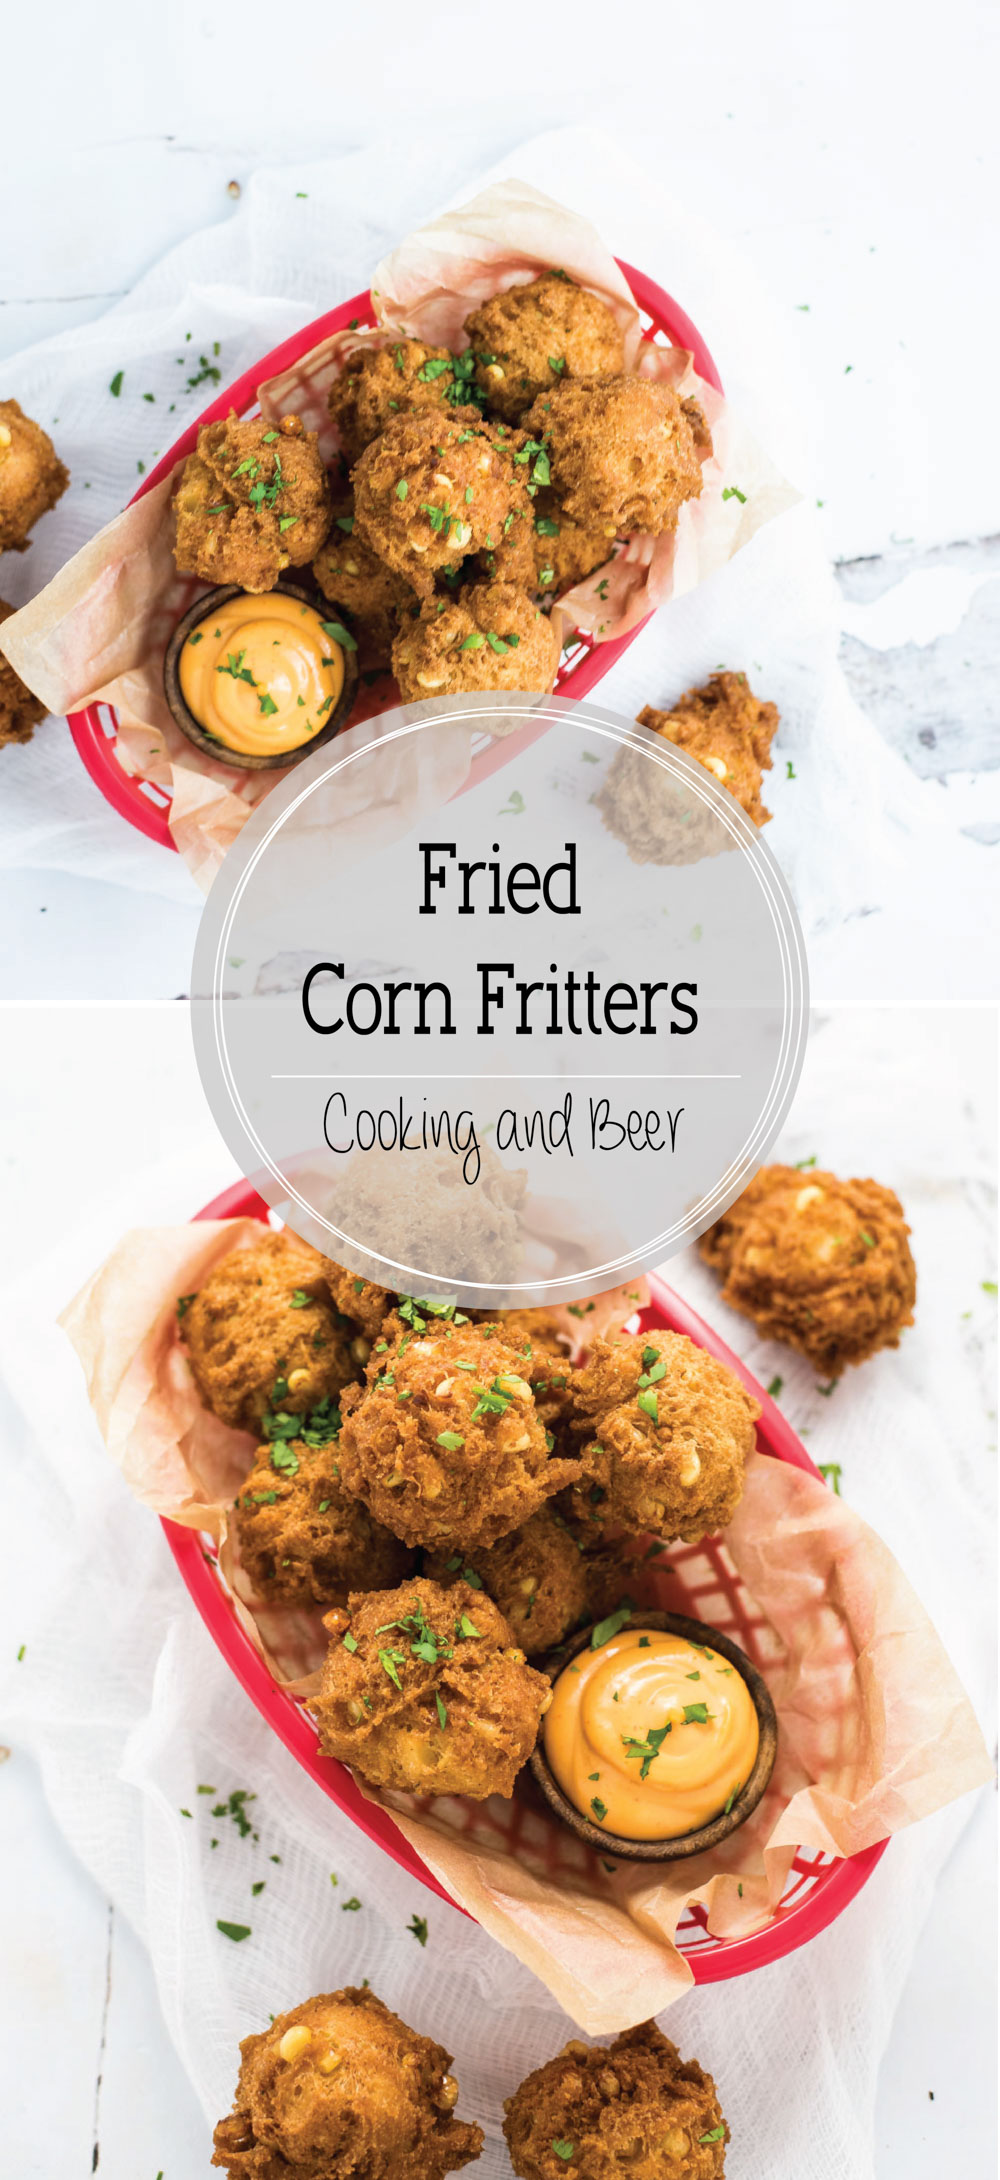 With just a handful of ingredients, you can have fried corn fritters in less than 30 minutes!